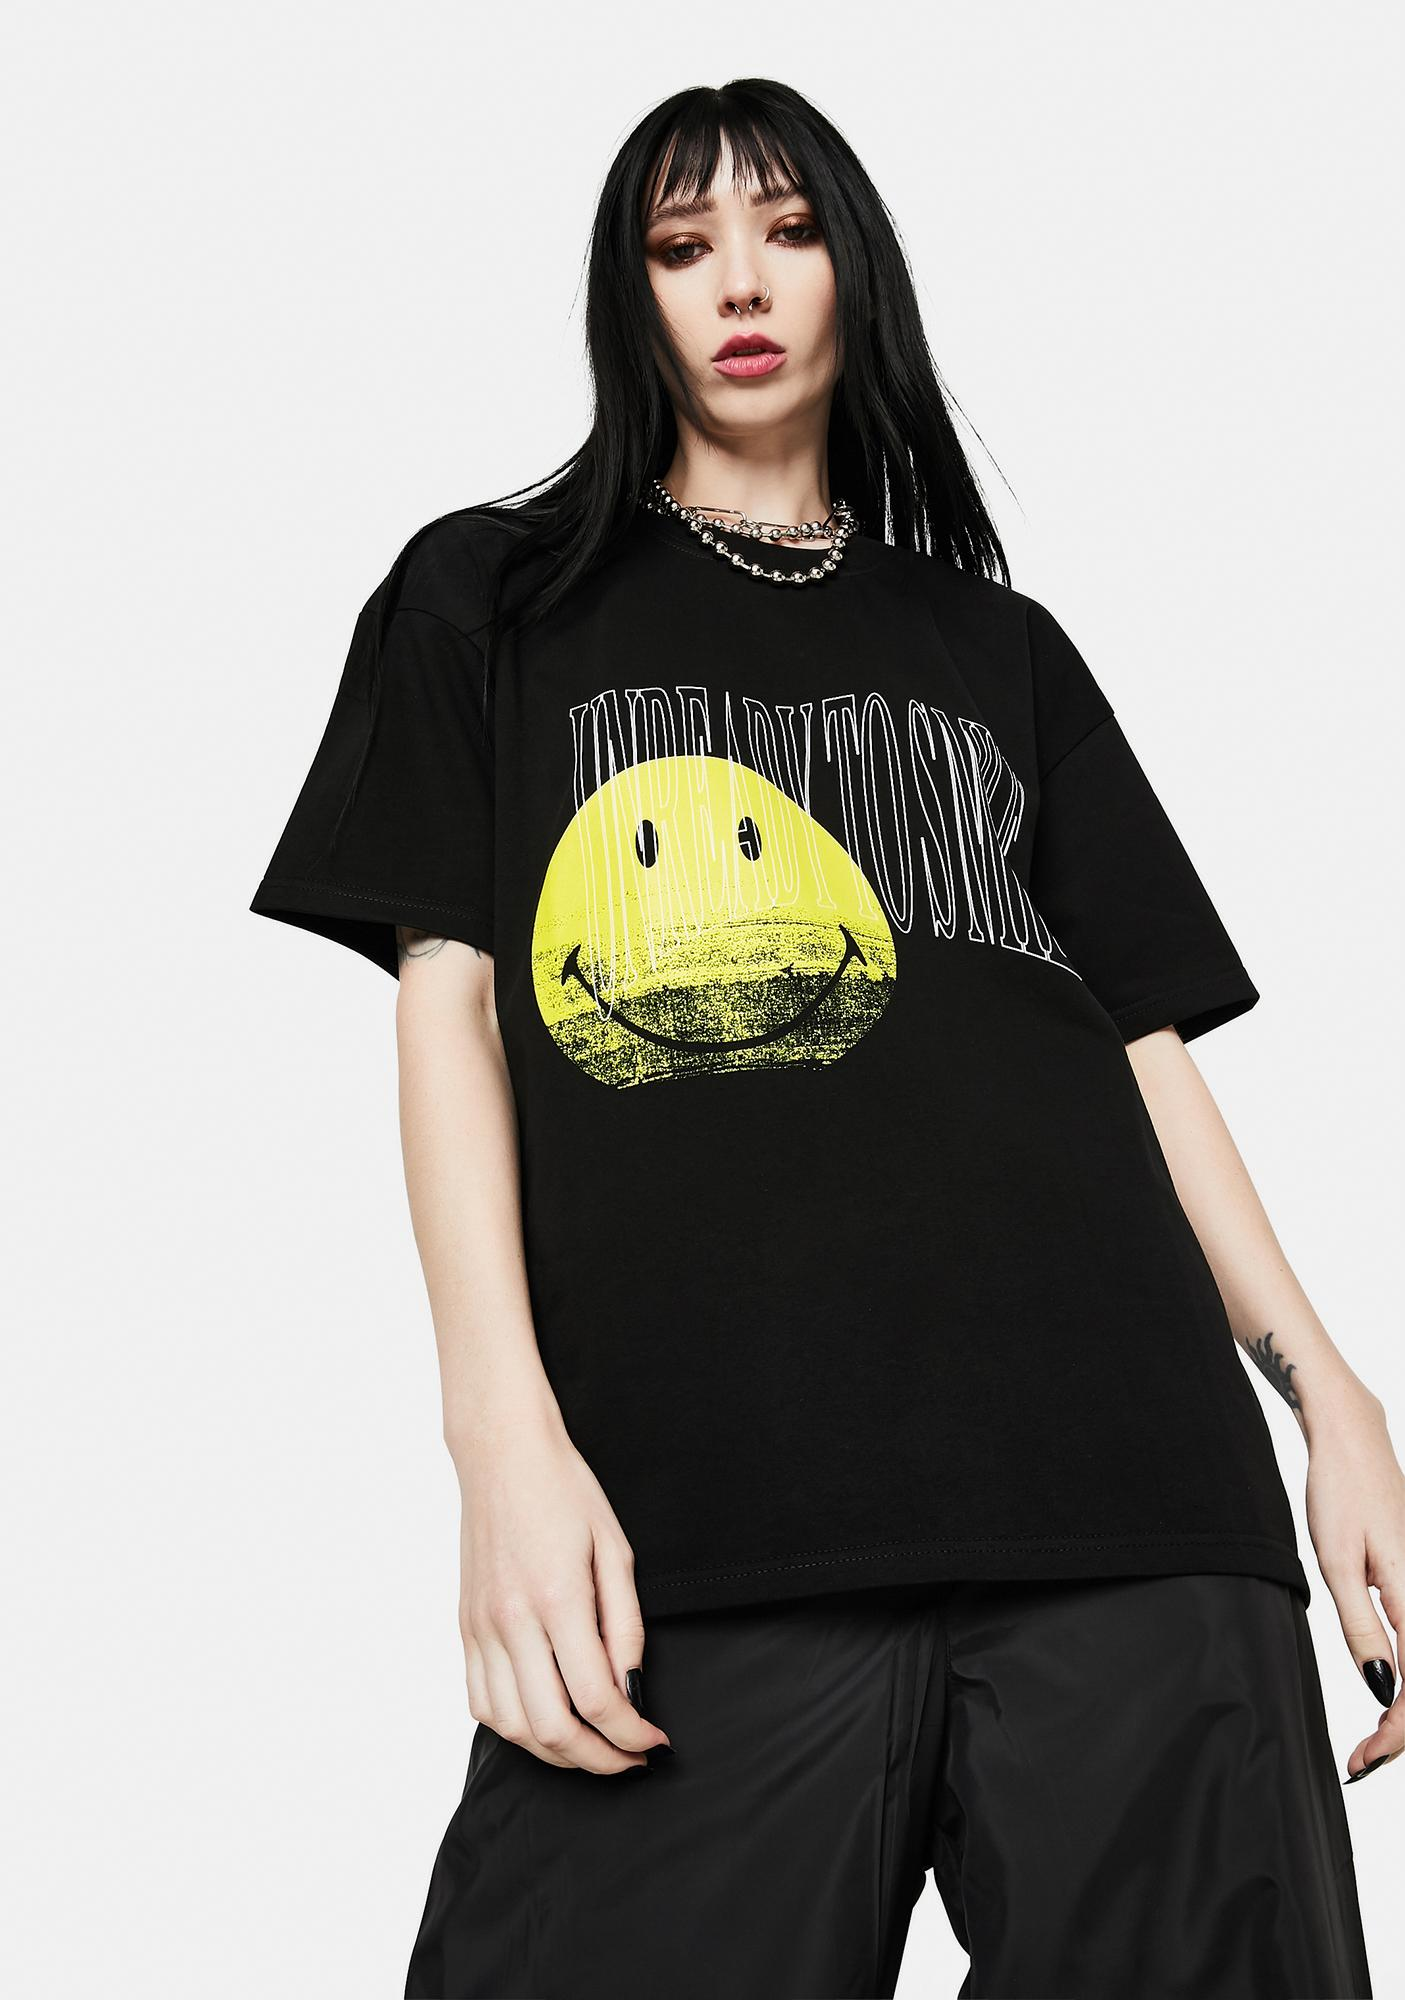 ZNY x Smiley Unready To Smile Graphic Tee